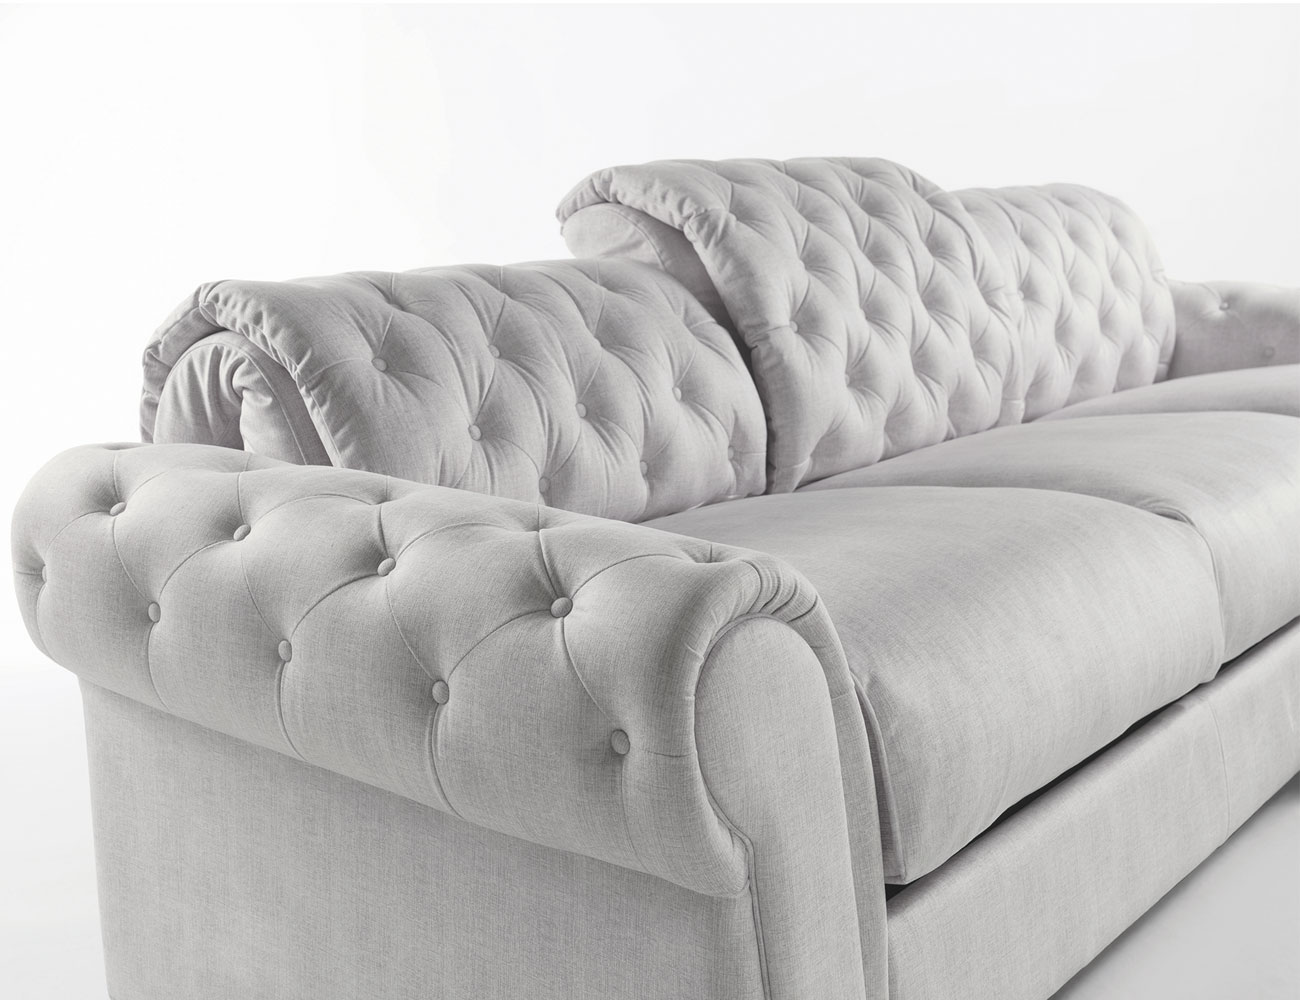 Sofa chaiselongue gran lujo decorativo capitone blanco tela 124